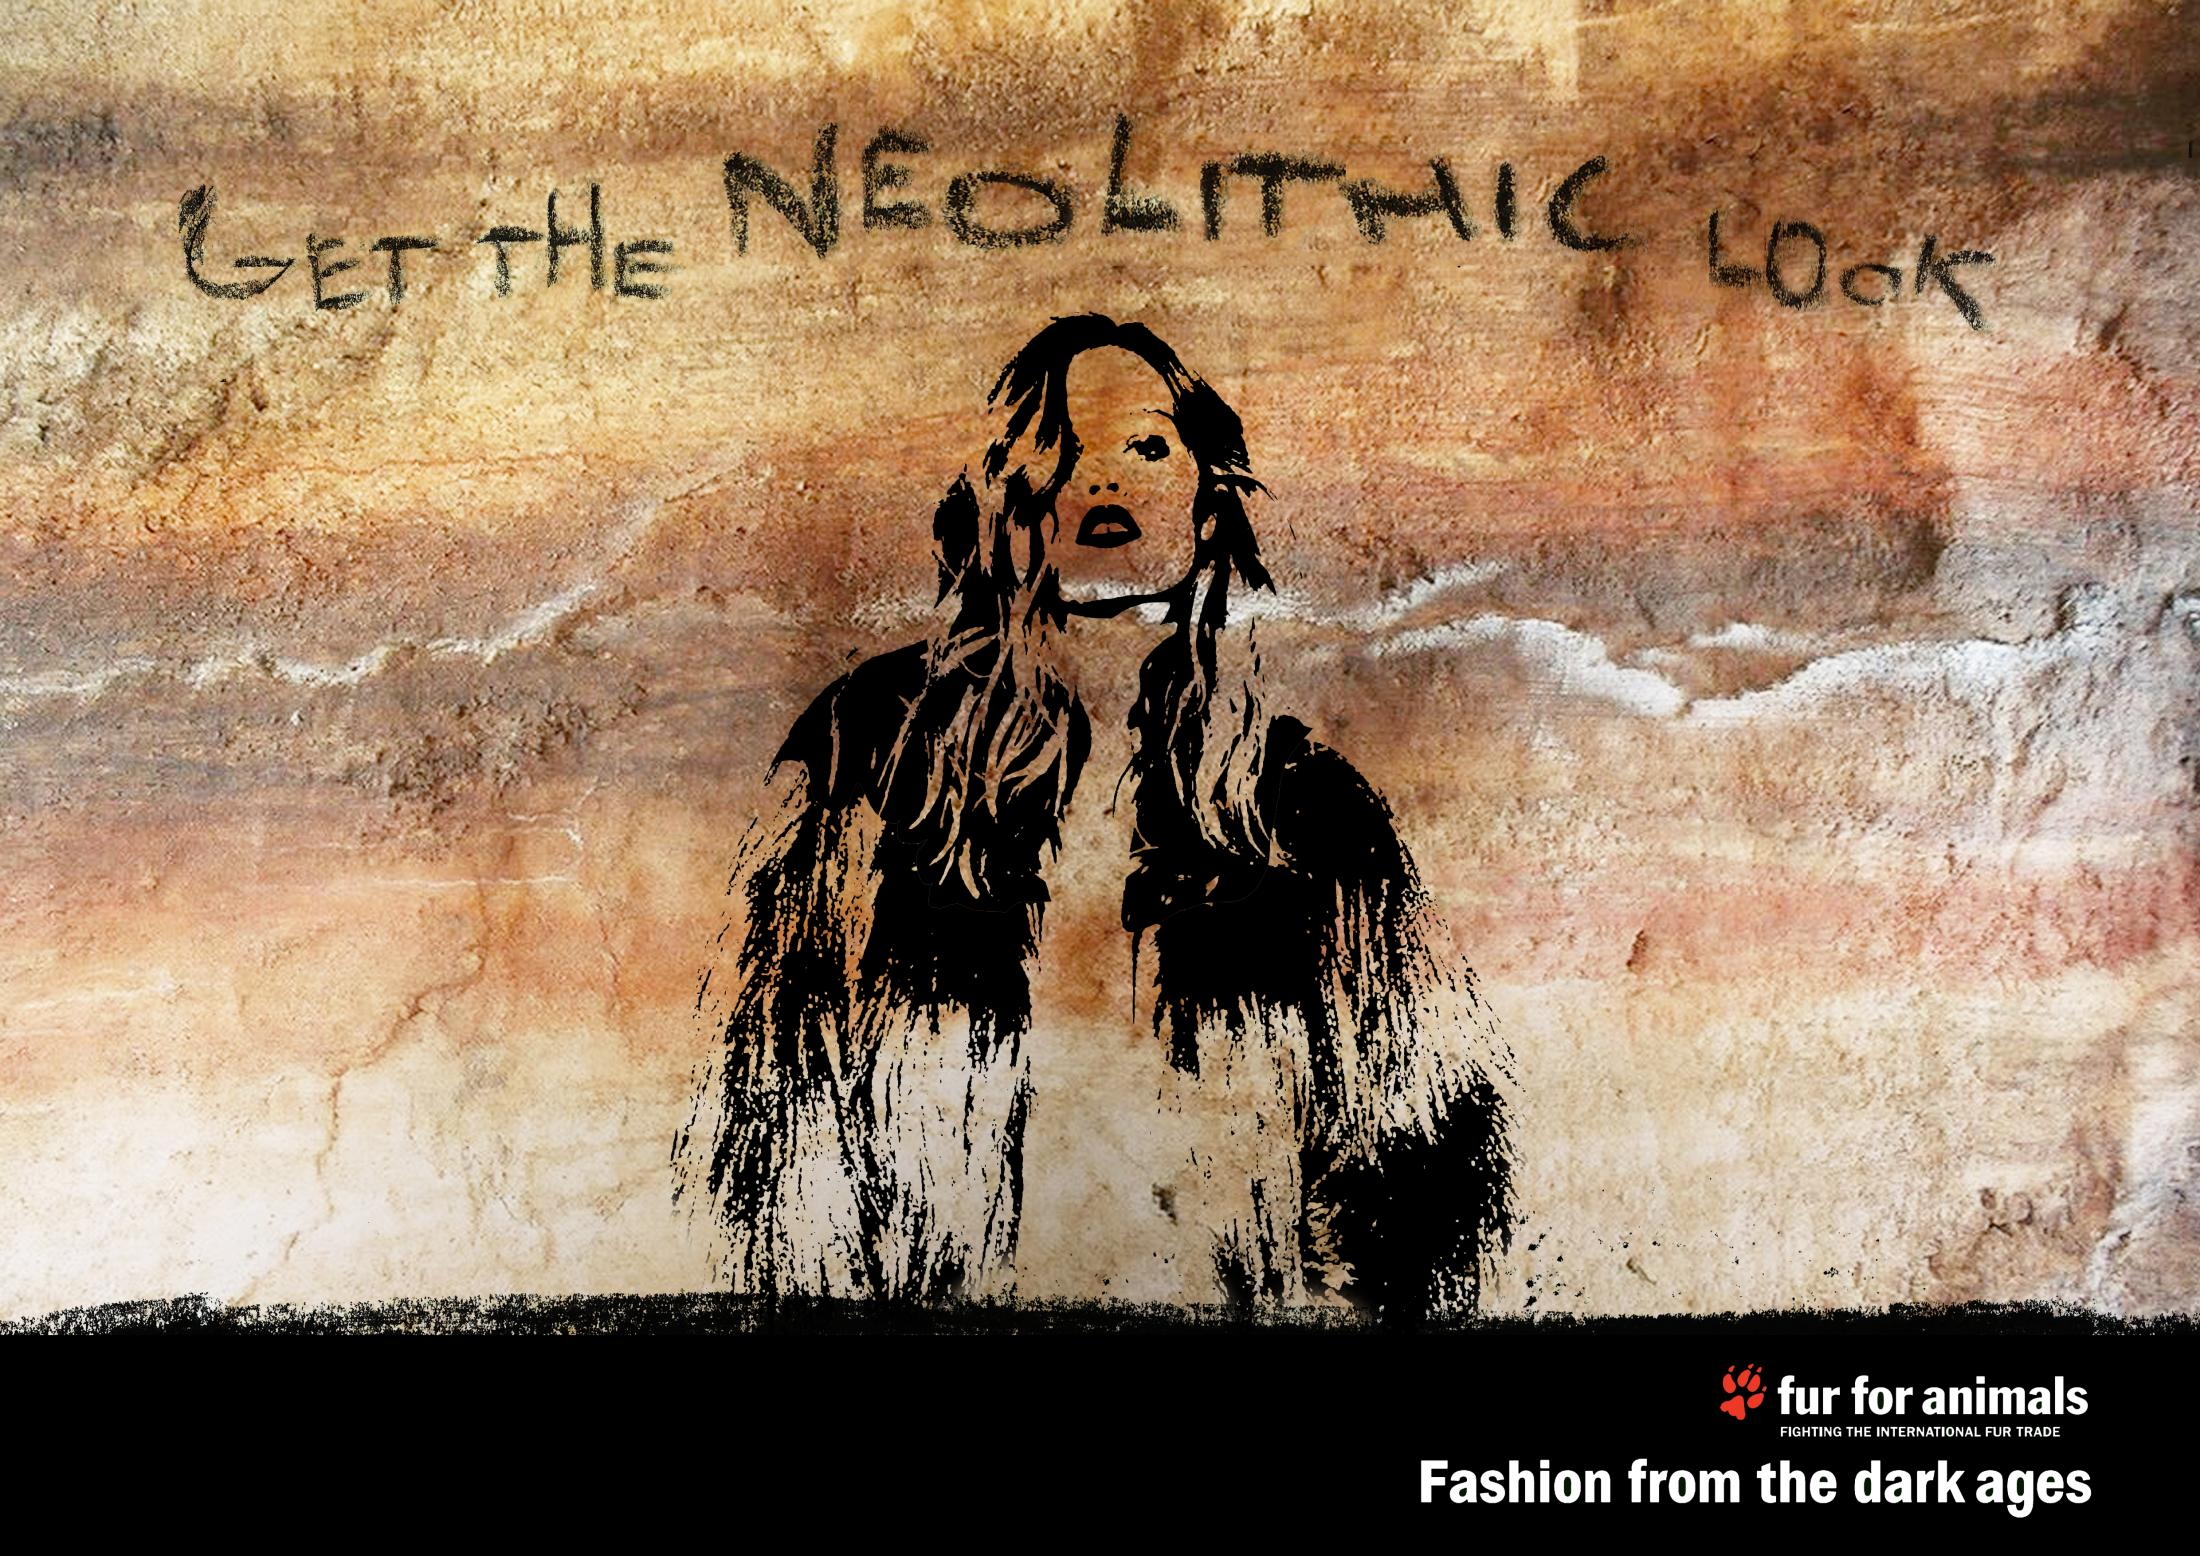 Fur for Animals: Neolithic Look